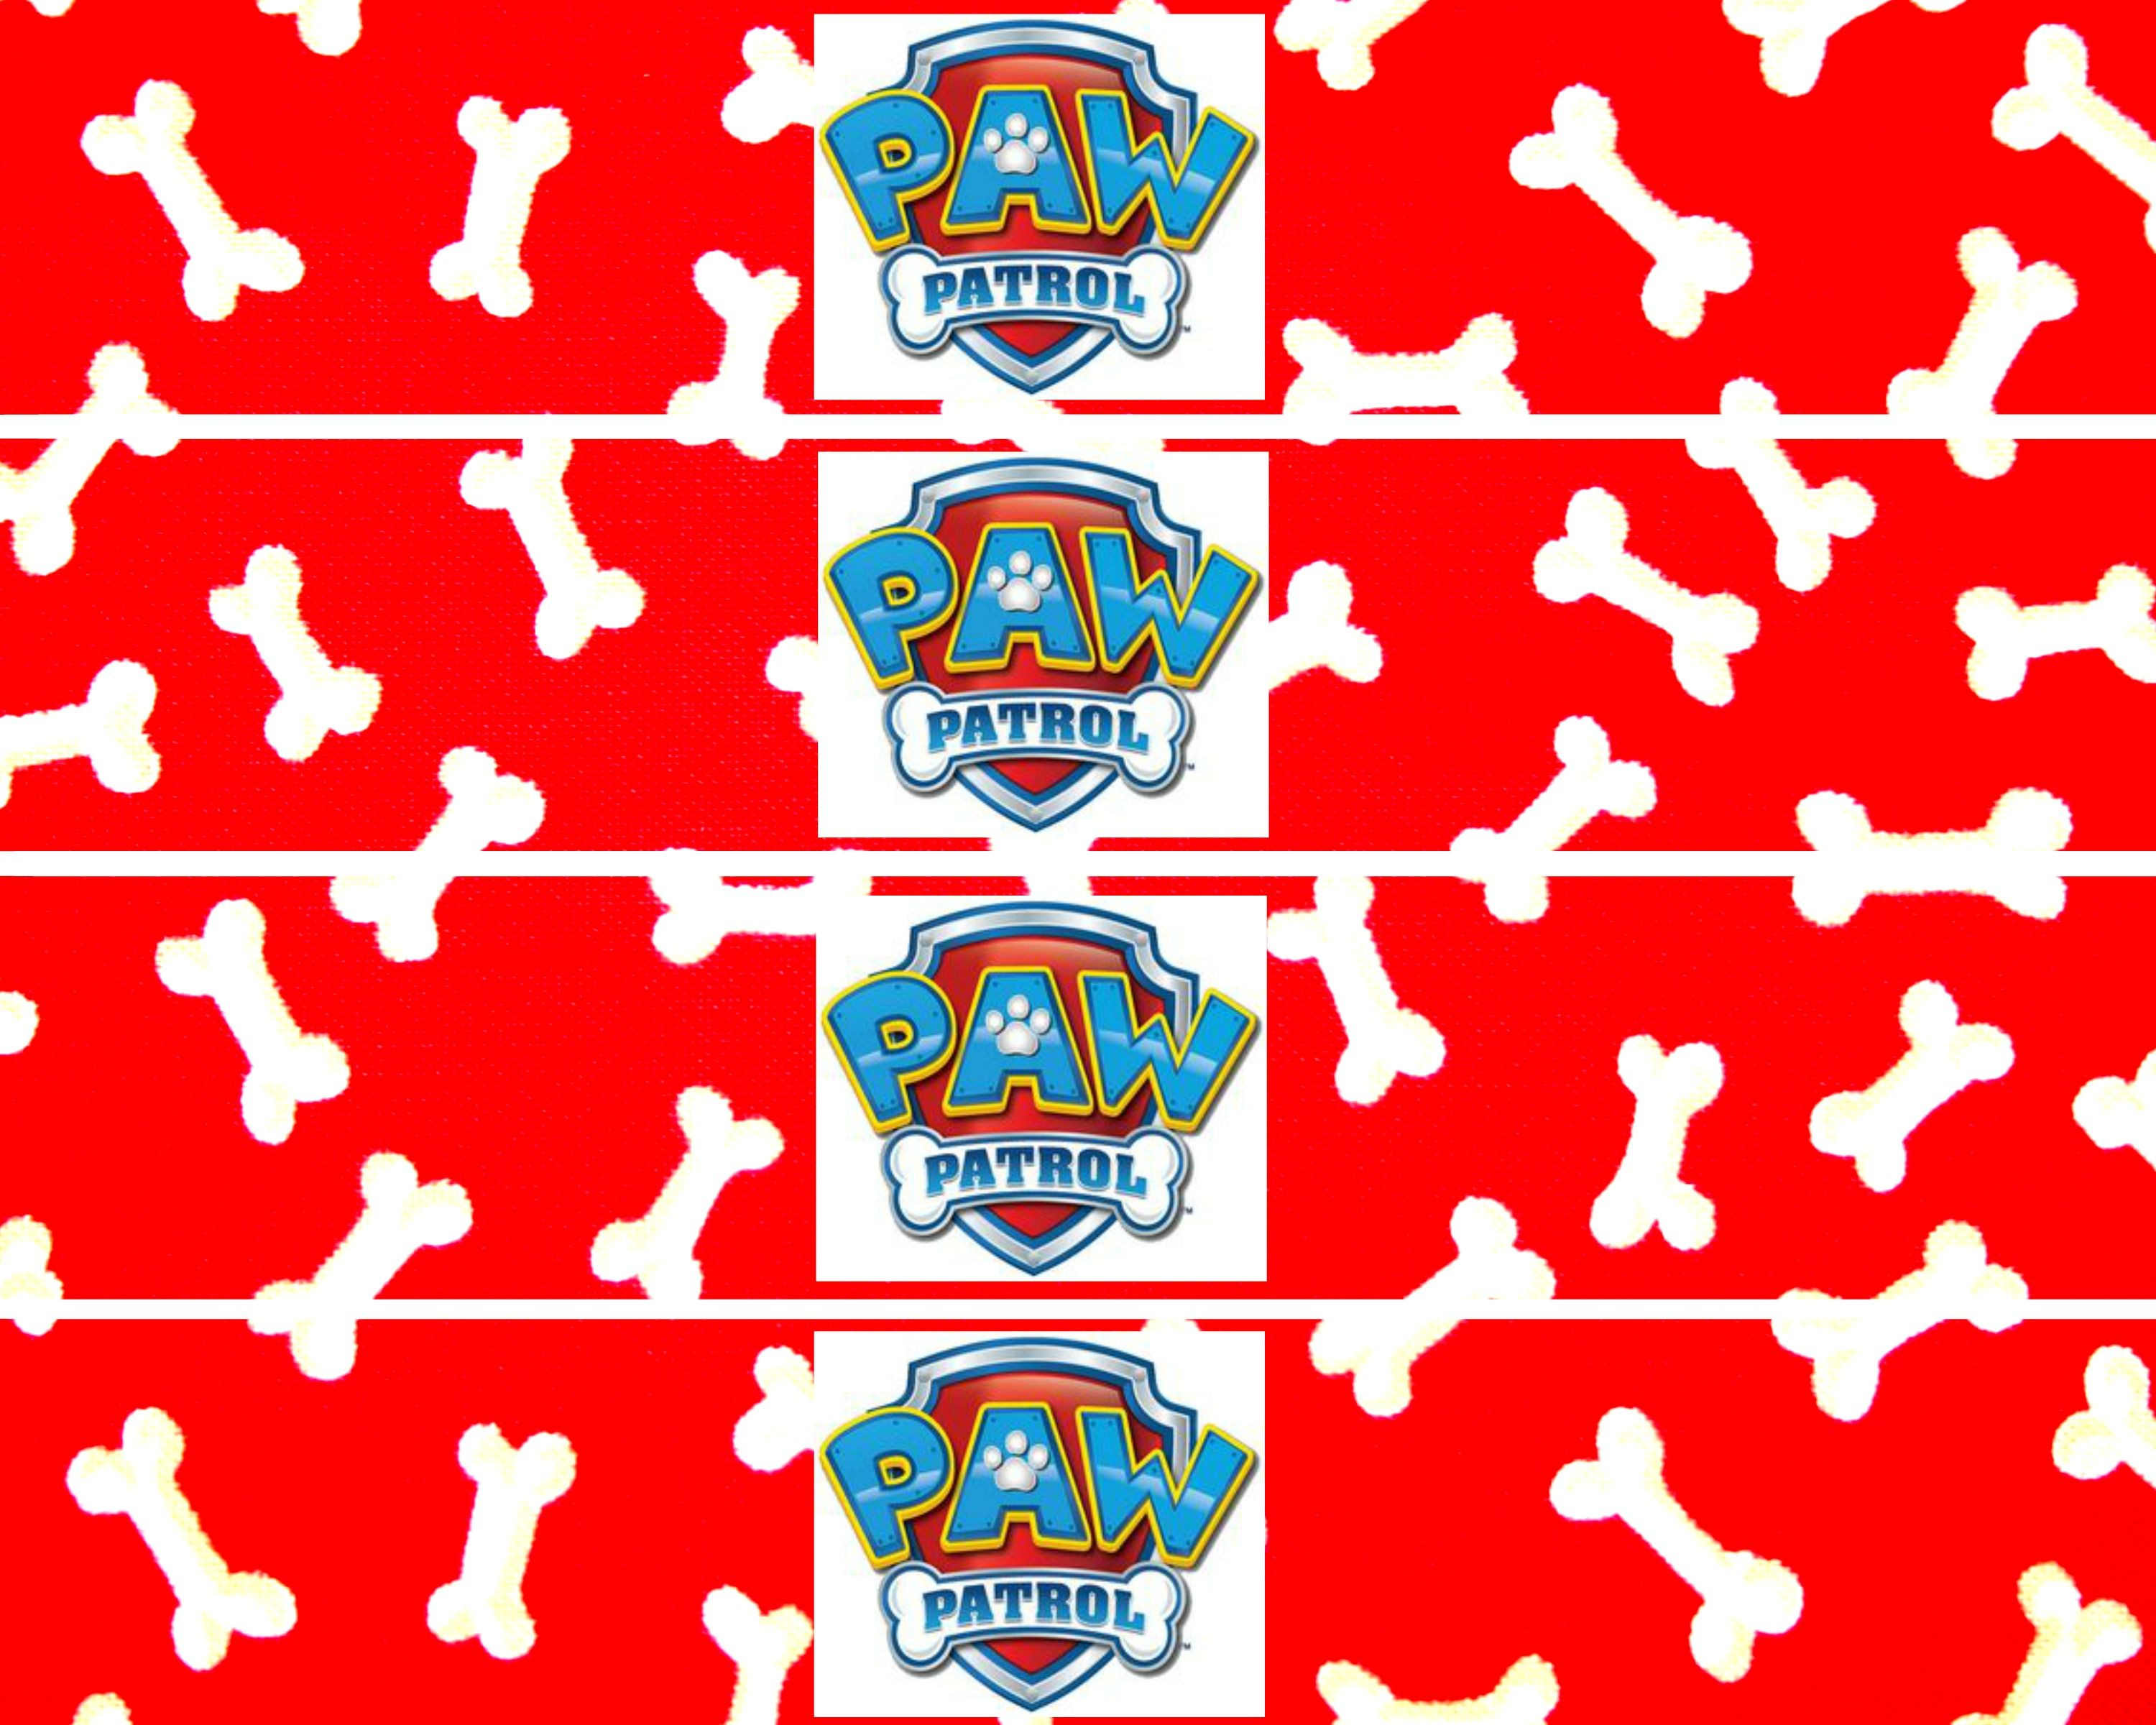 paw patrol water bottle labels | Aden- Birthday Ideas! | Pinterest ...